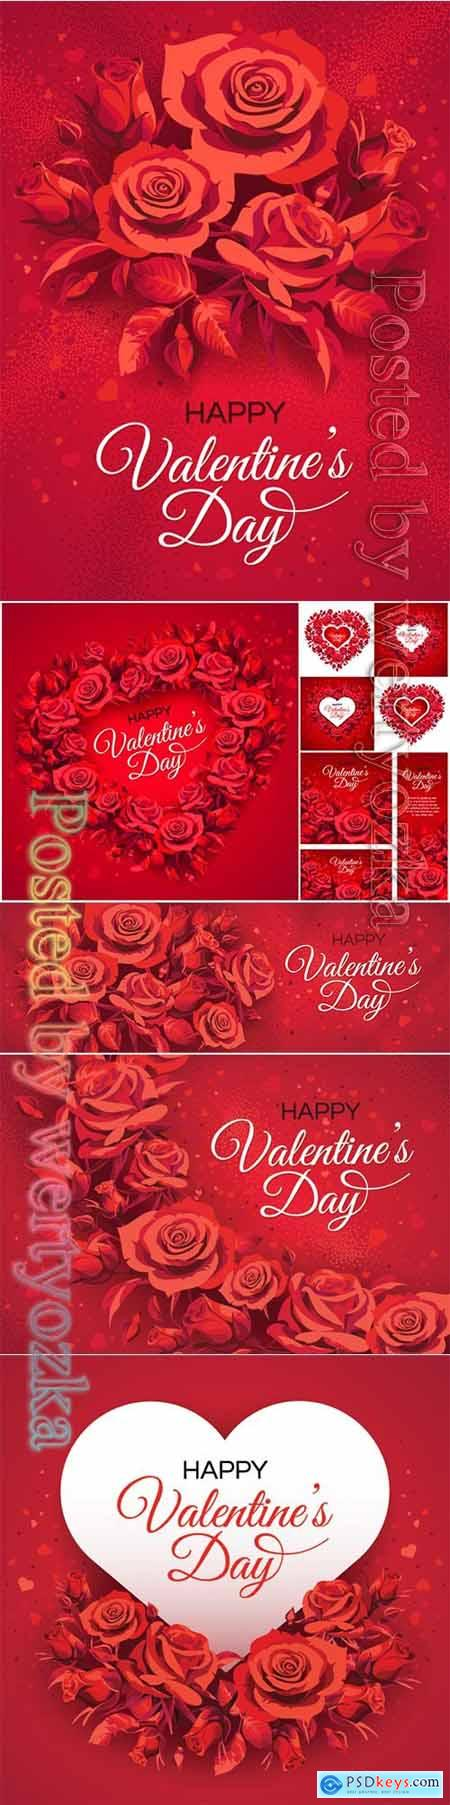 Valentines Day greeting card templates with red roses